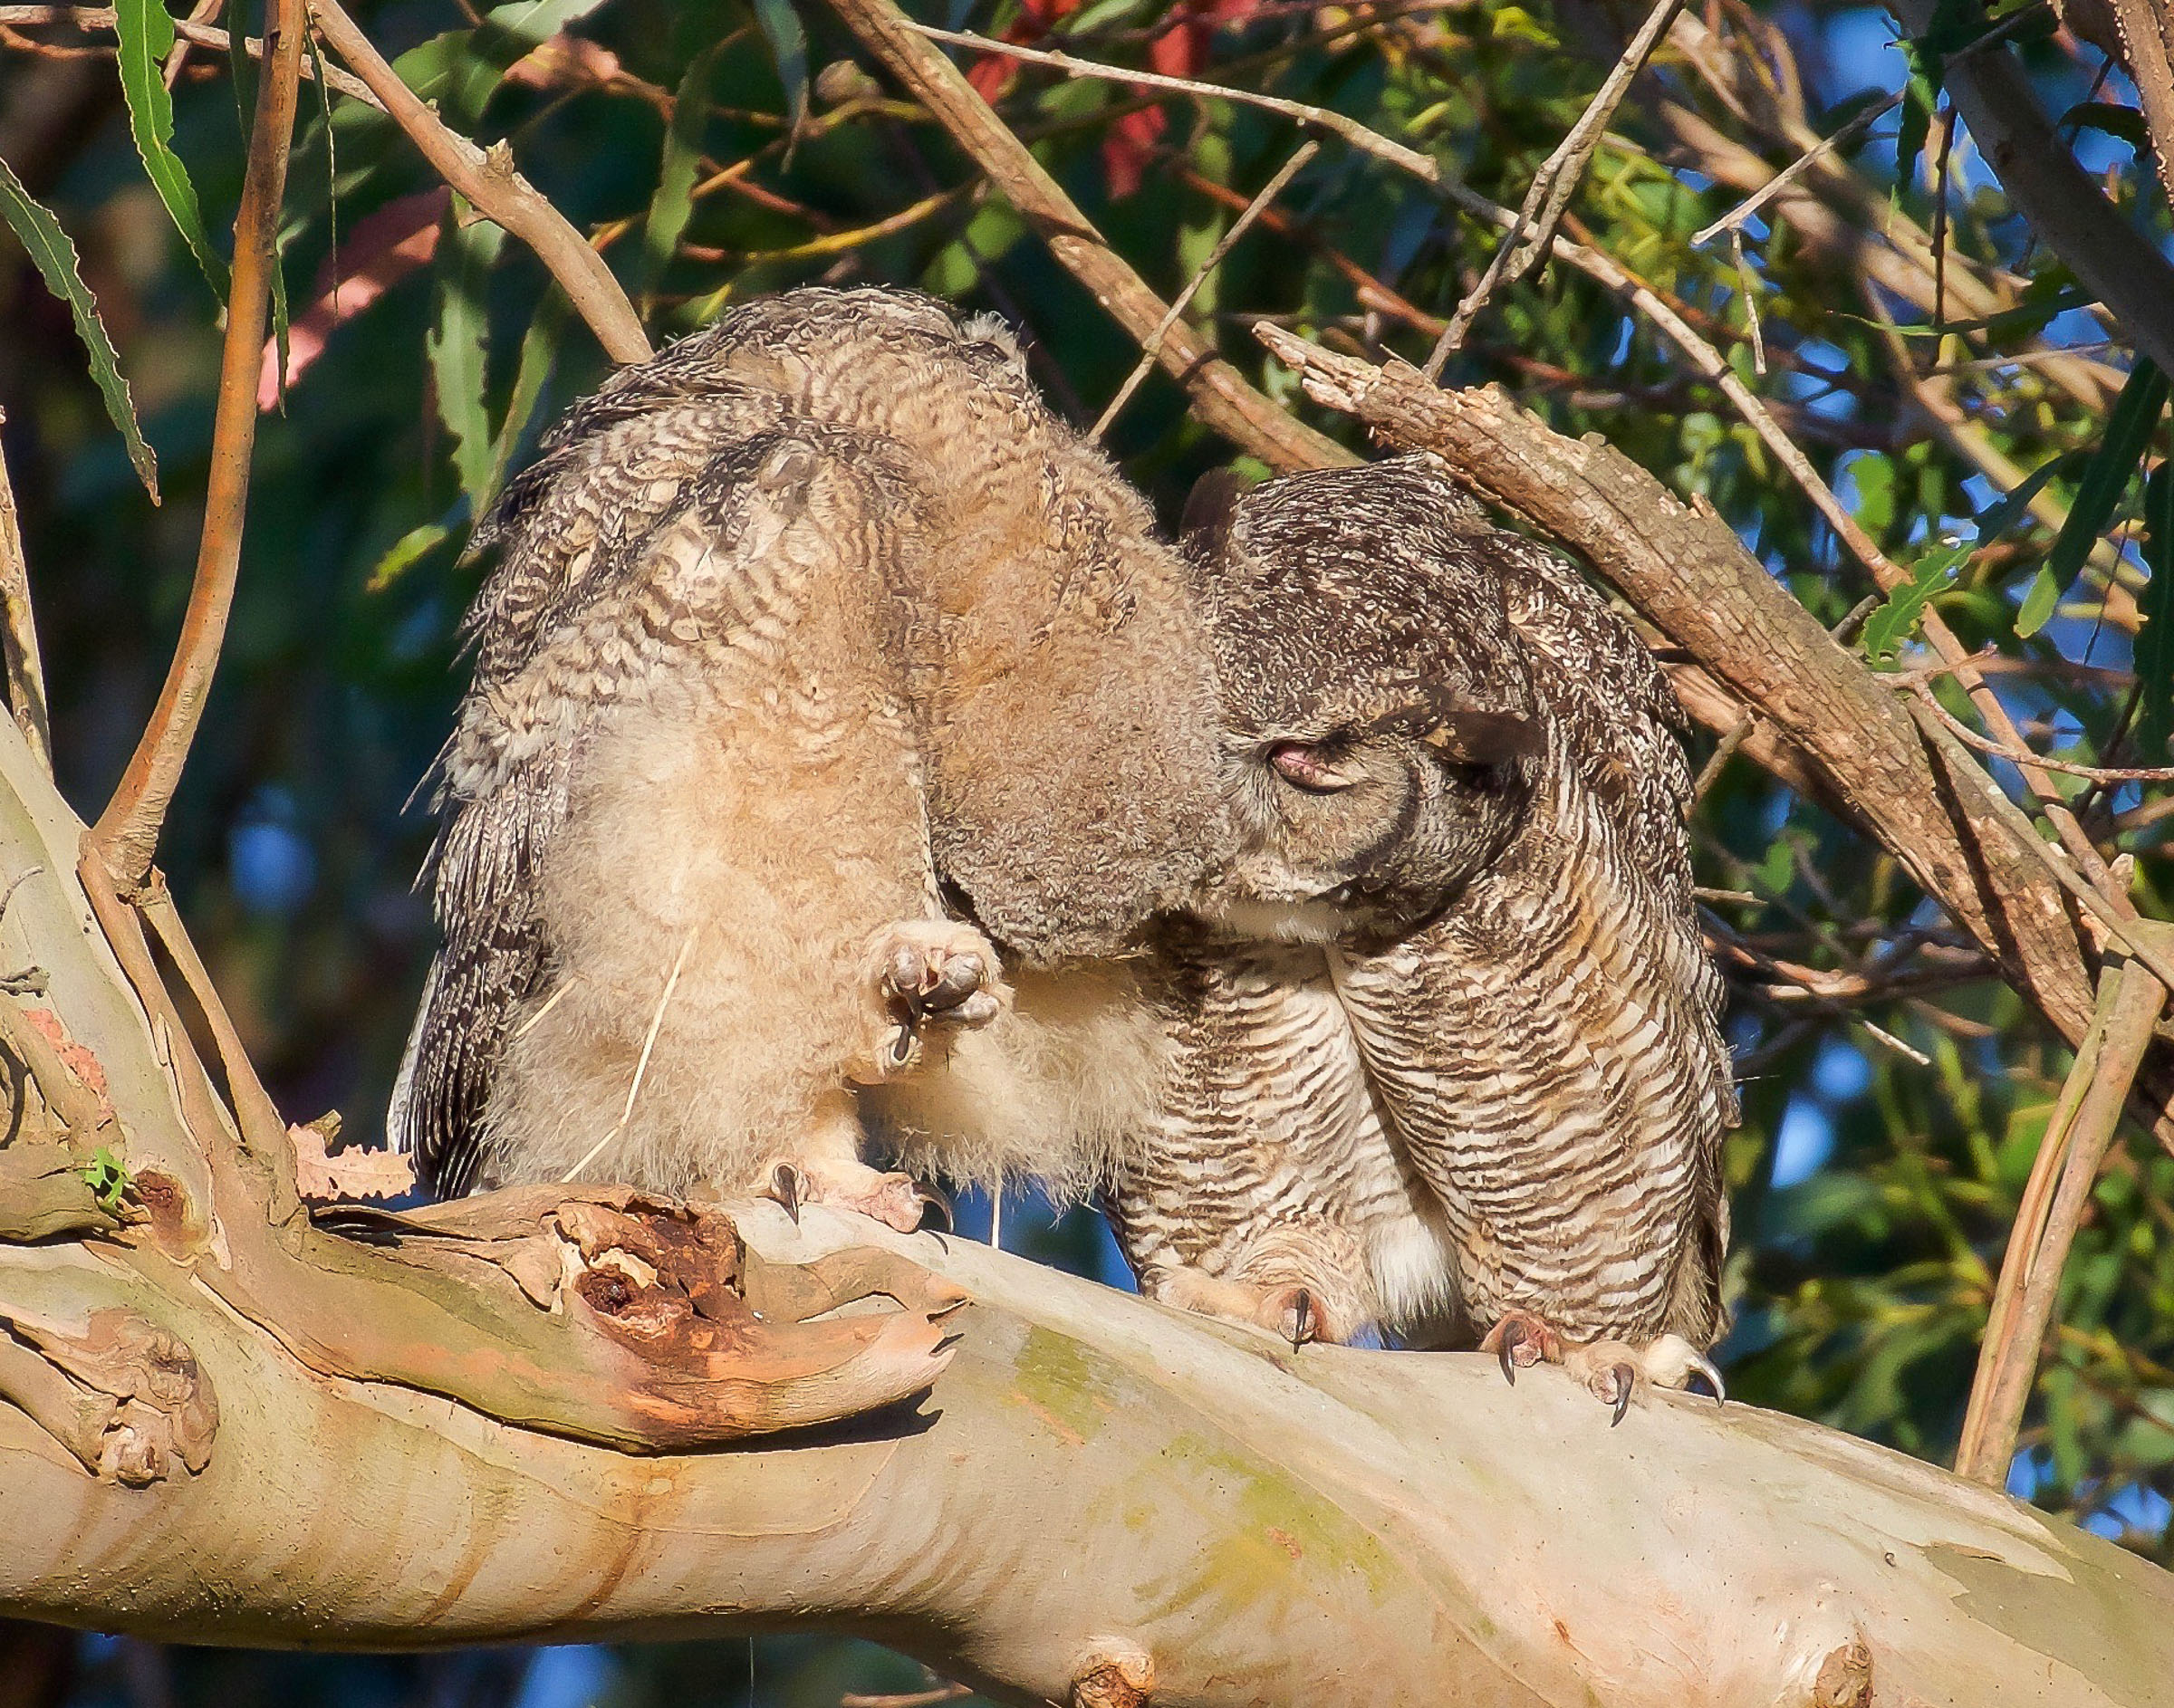 mother-owl-and-owlet-on-branch-grooming-10.jpg